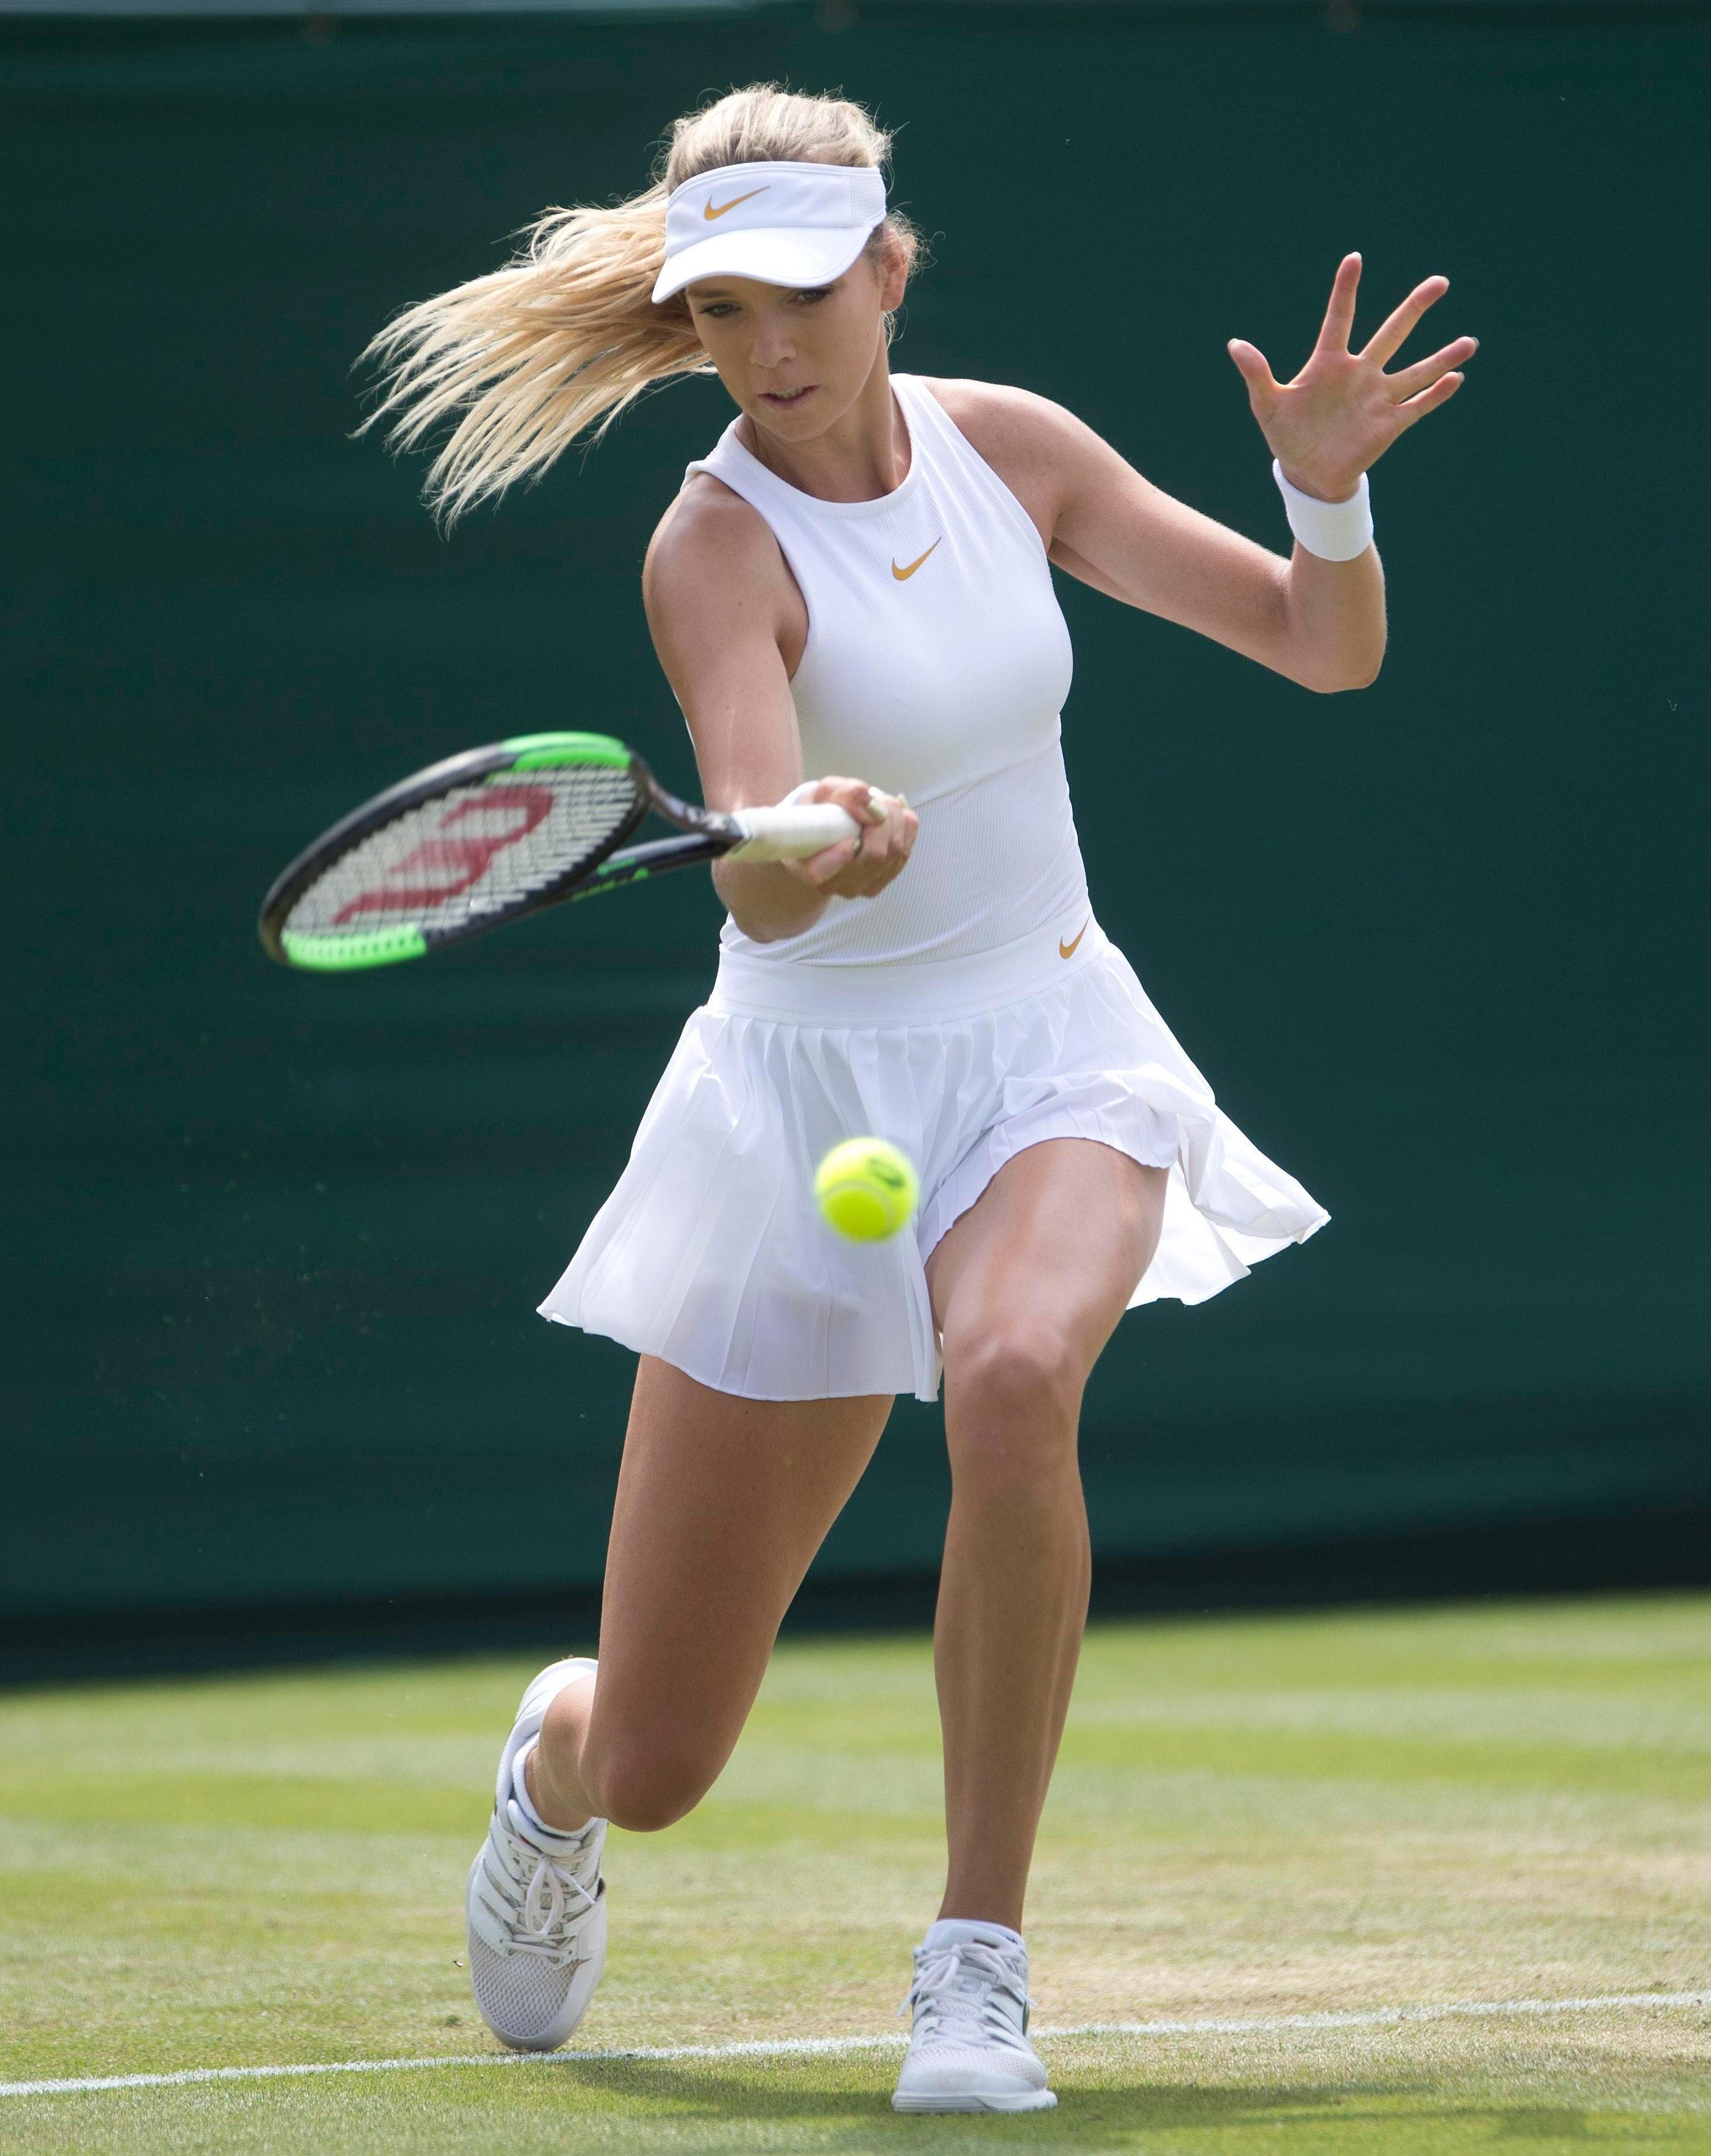 The 22-year-old is on the verge of reclaiming her spot as Britain's No.2 female tennis star